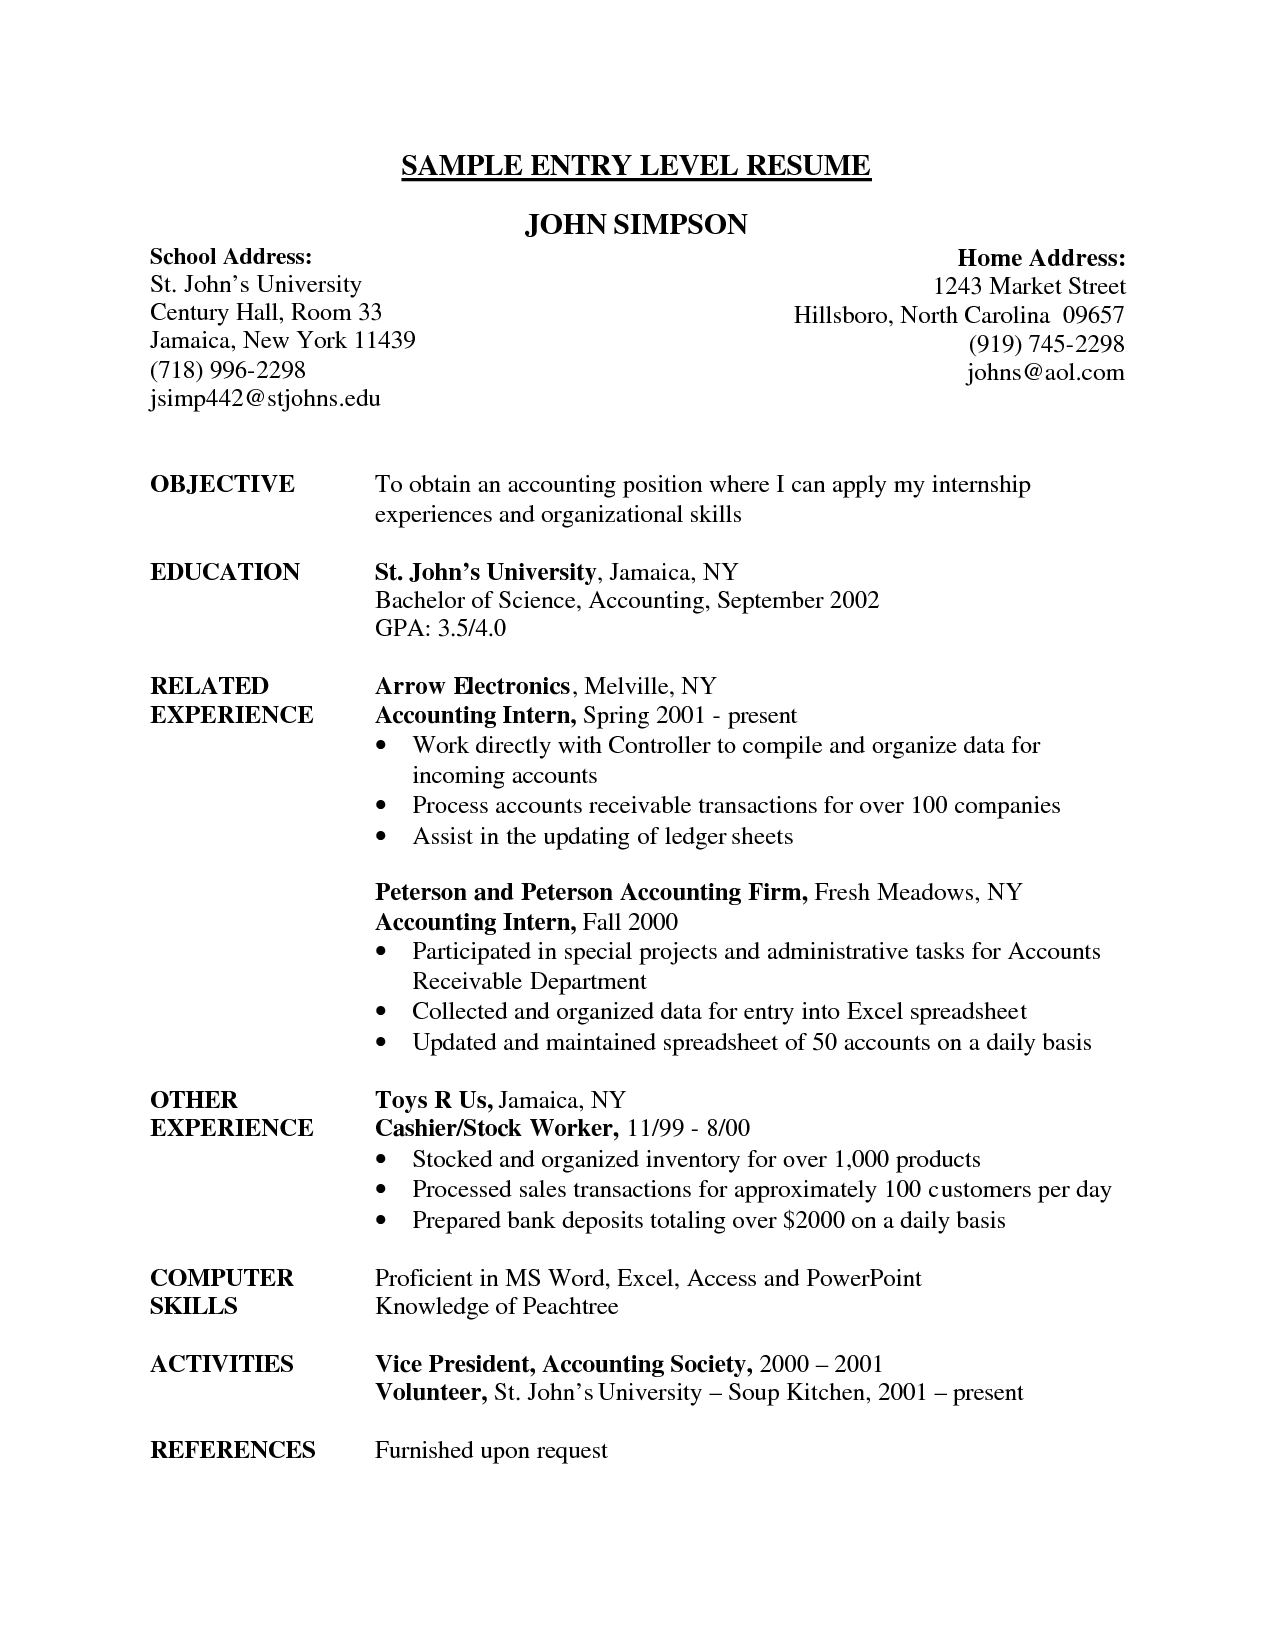 Resume Beginner Resume Objective entry level business analyst resume examples for 10 marketing samples hiring 0431faa2b38096c7faed053de560bed4 levelh